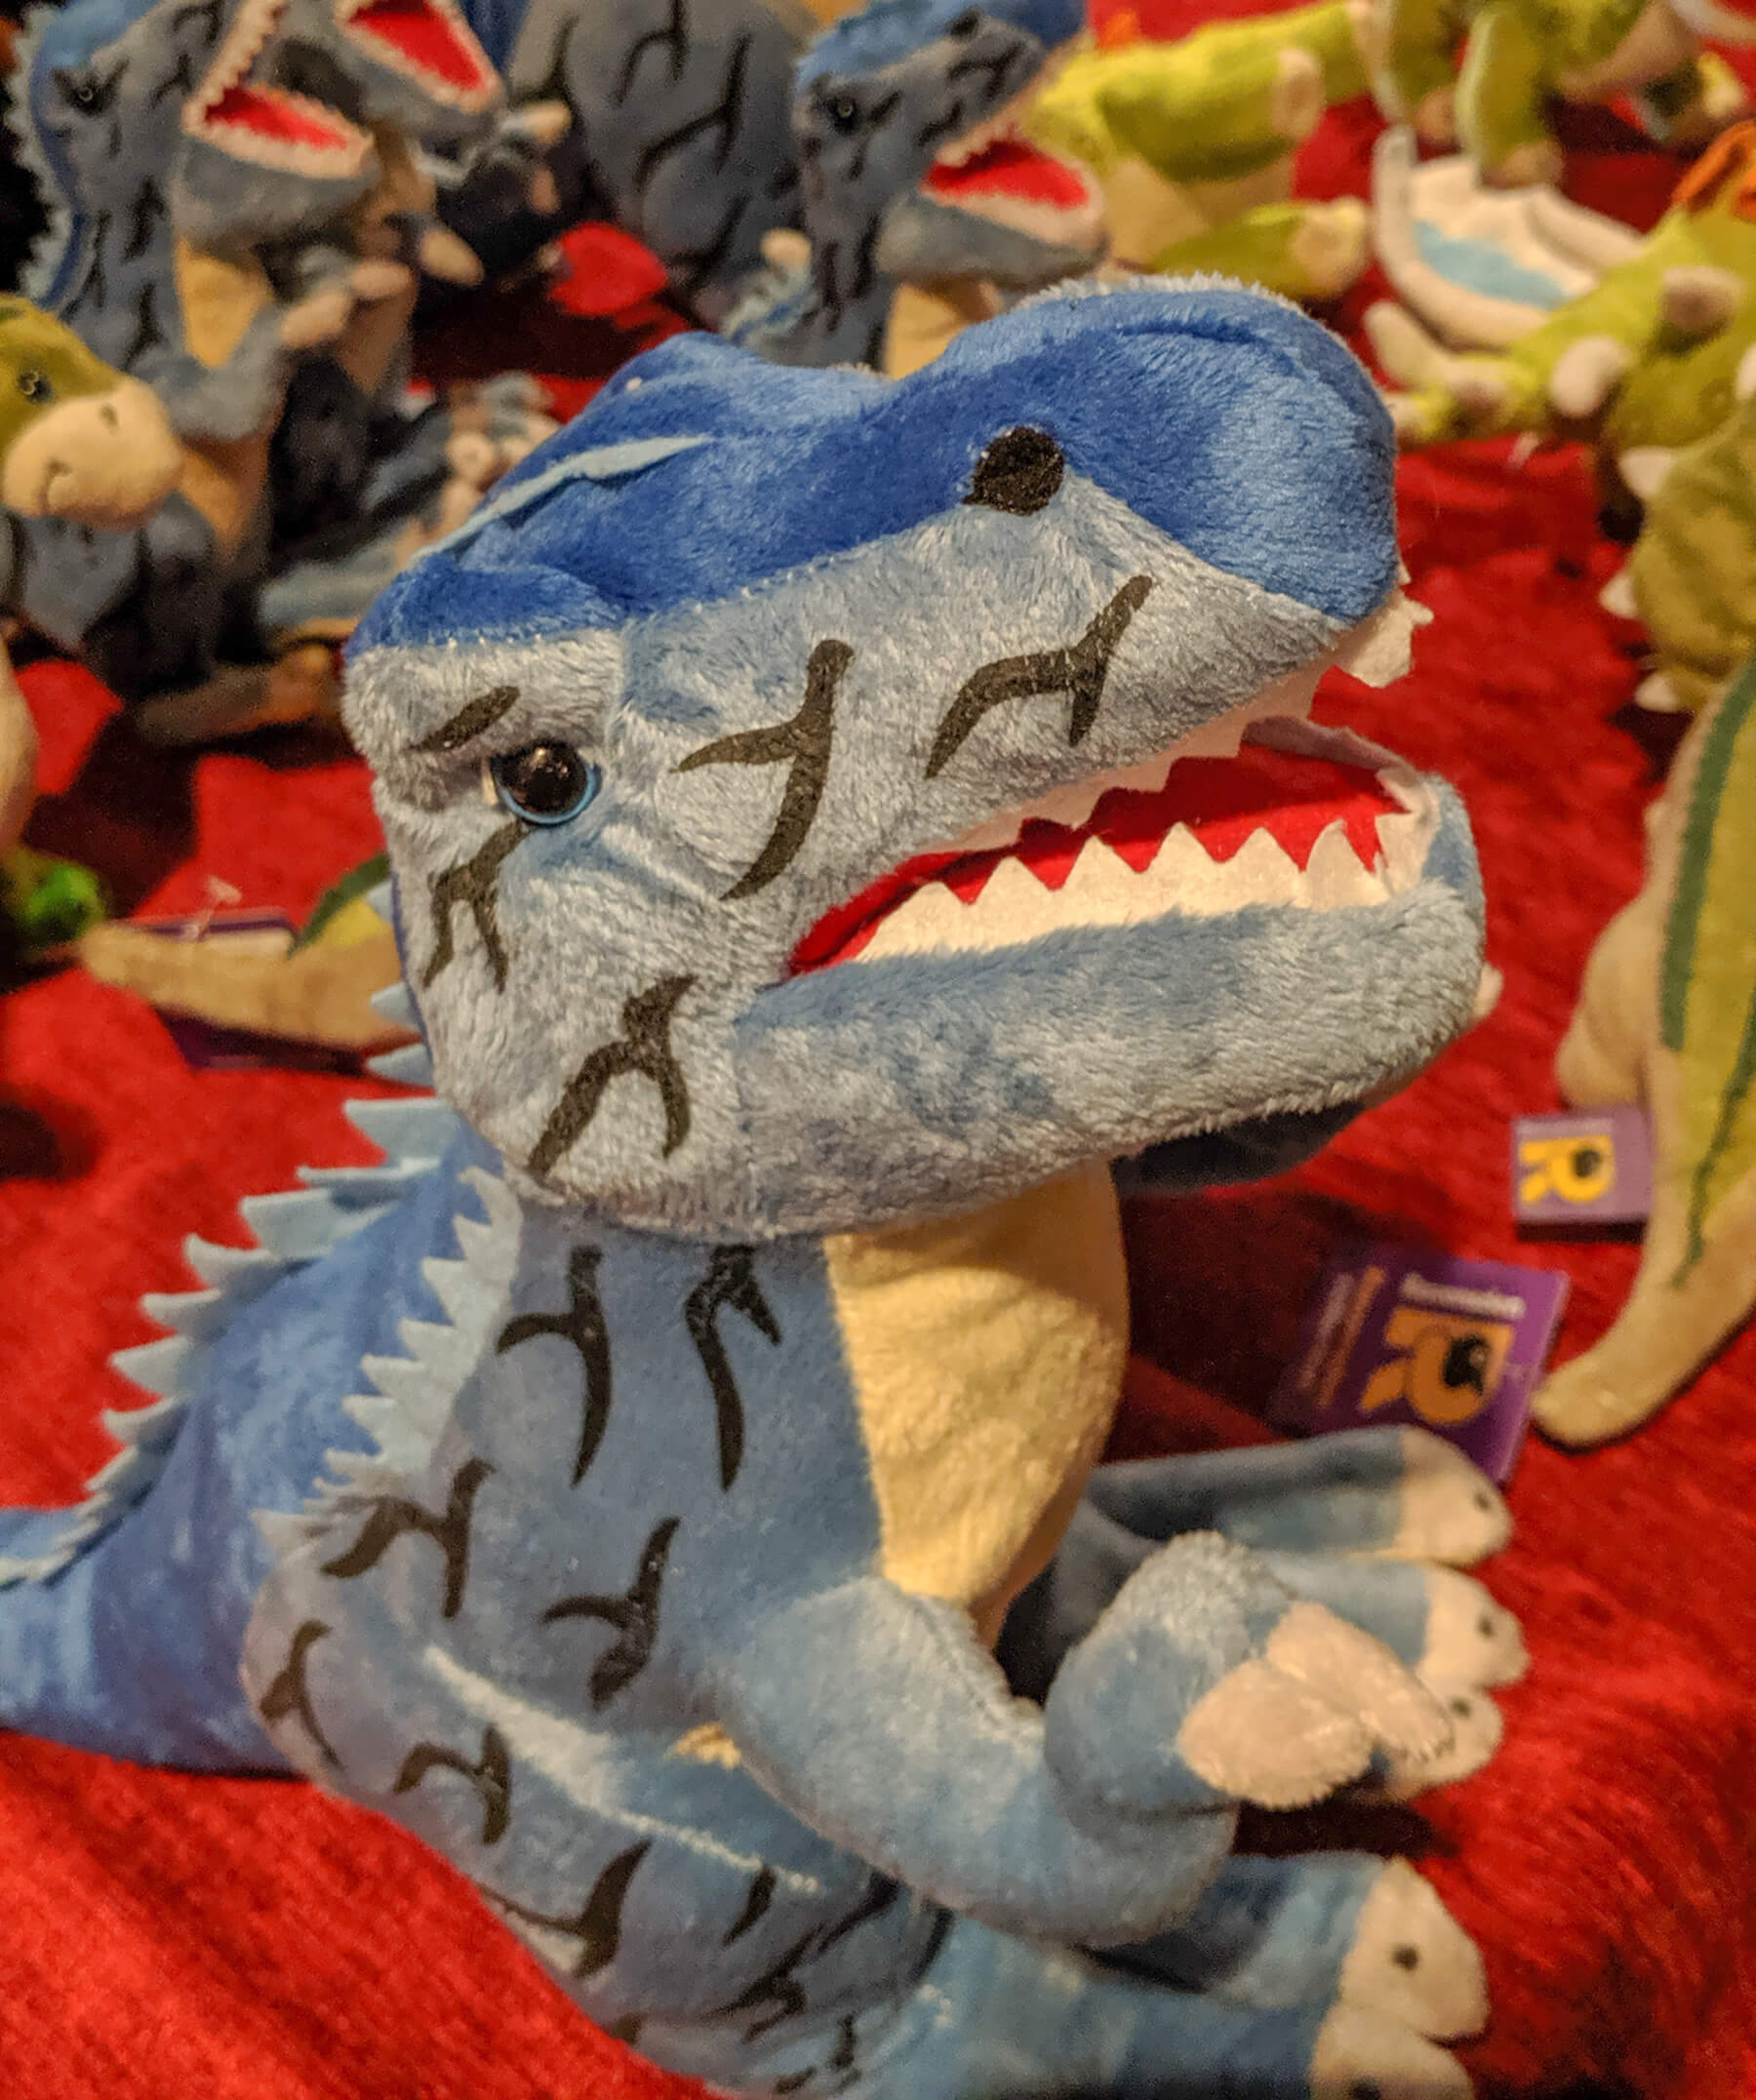 Cuddly dinosaur toy